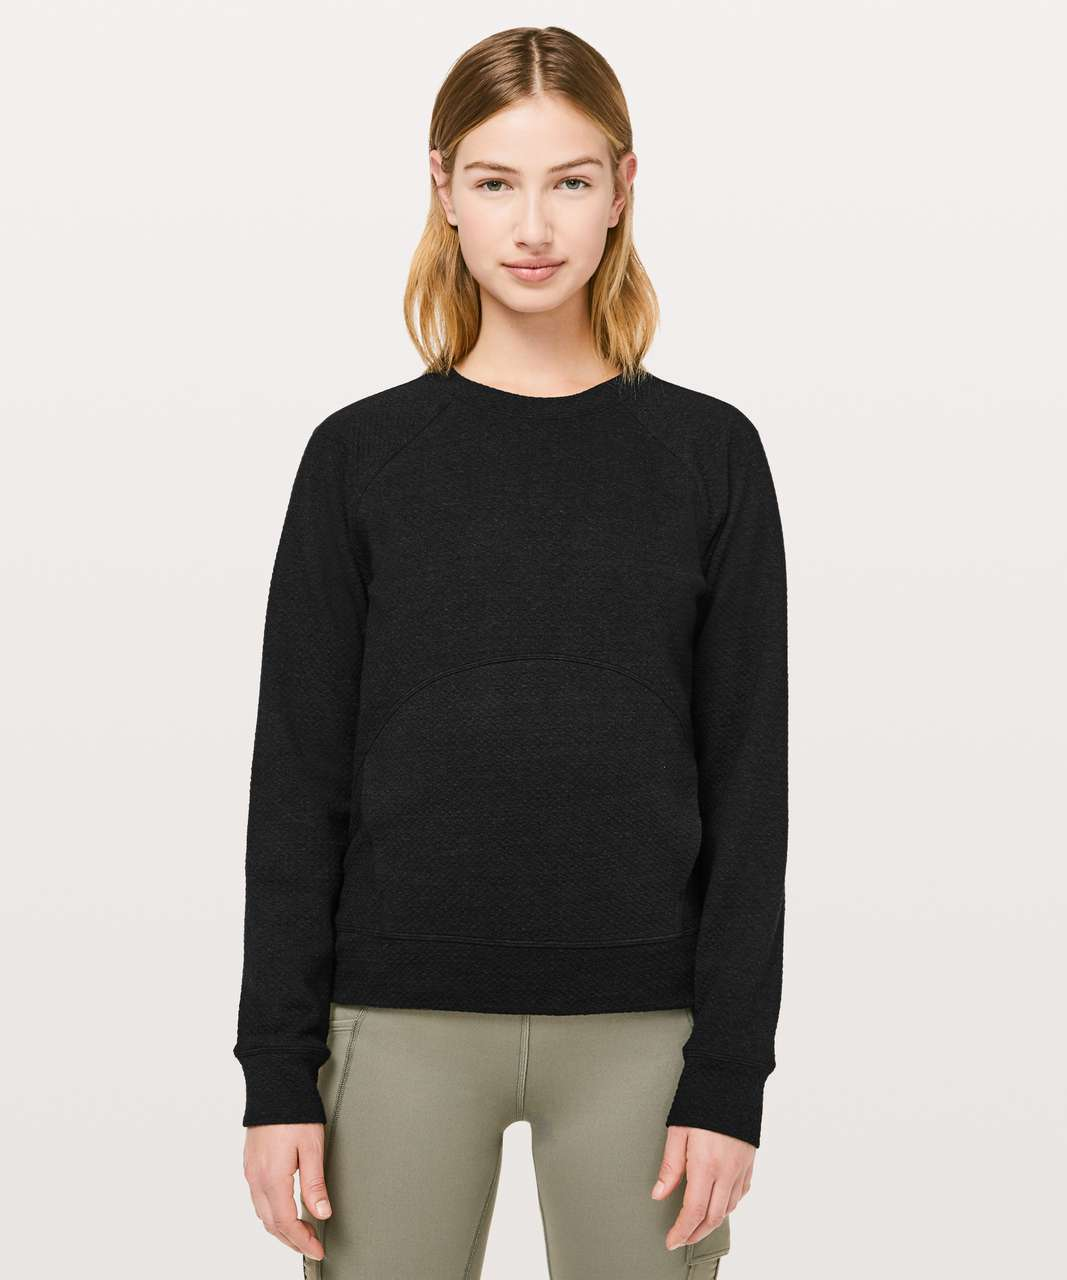 Lululemon Catch A Moment Crew - Heathered Core Black